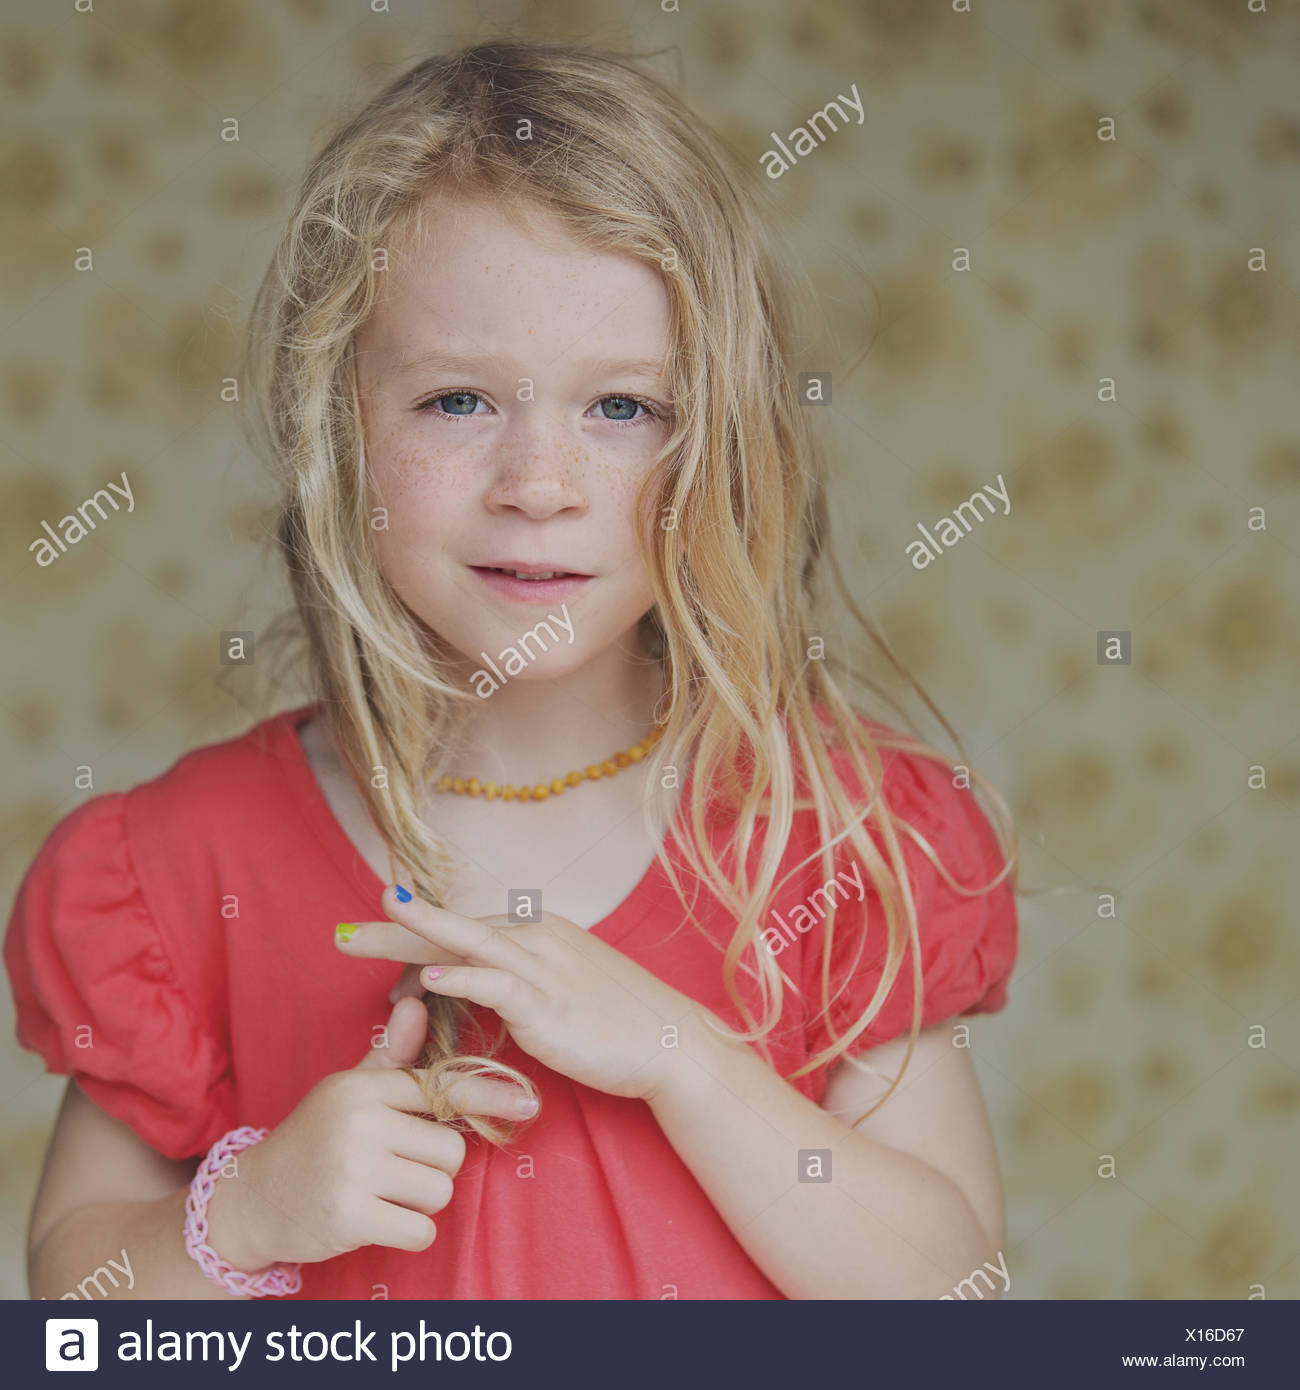 Portrait of a girl playing with her hair - Stock Image